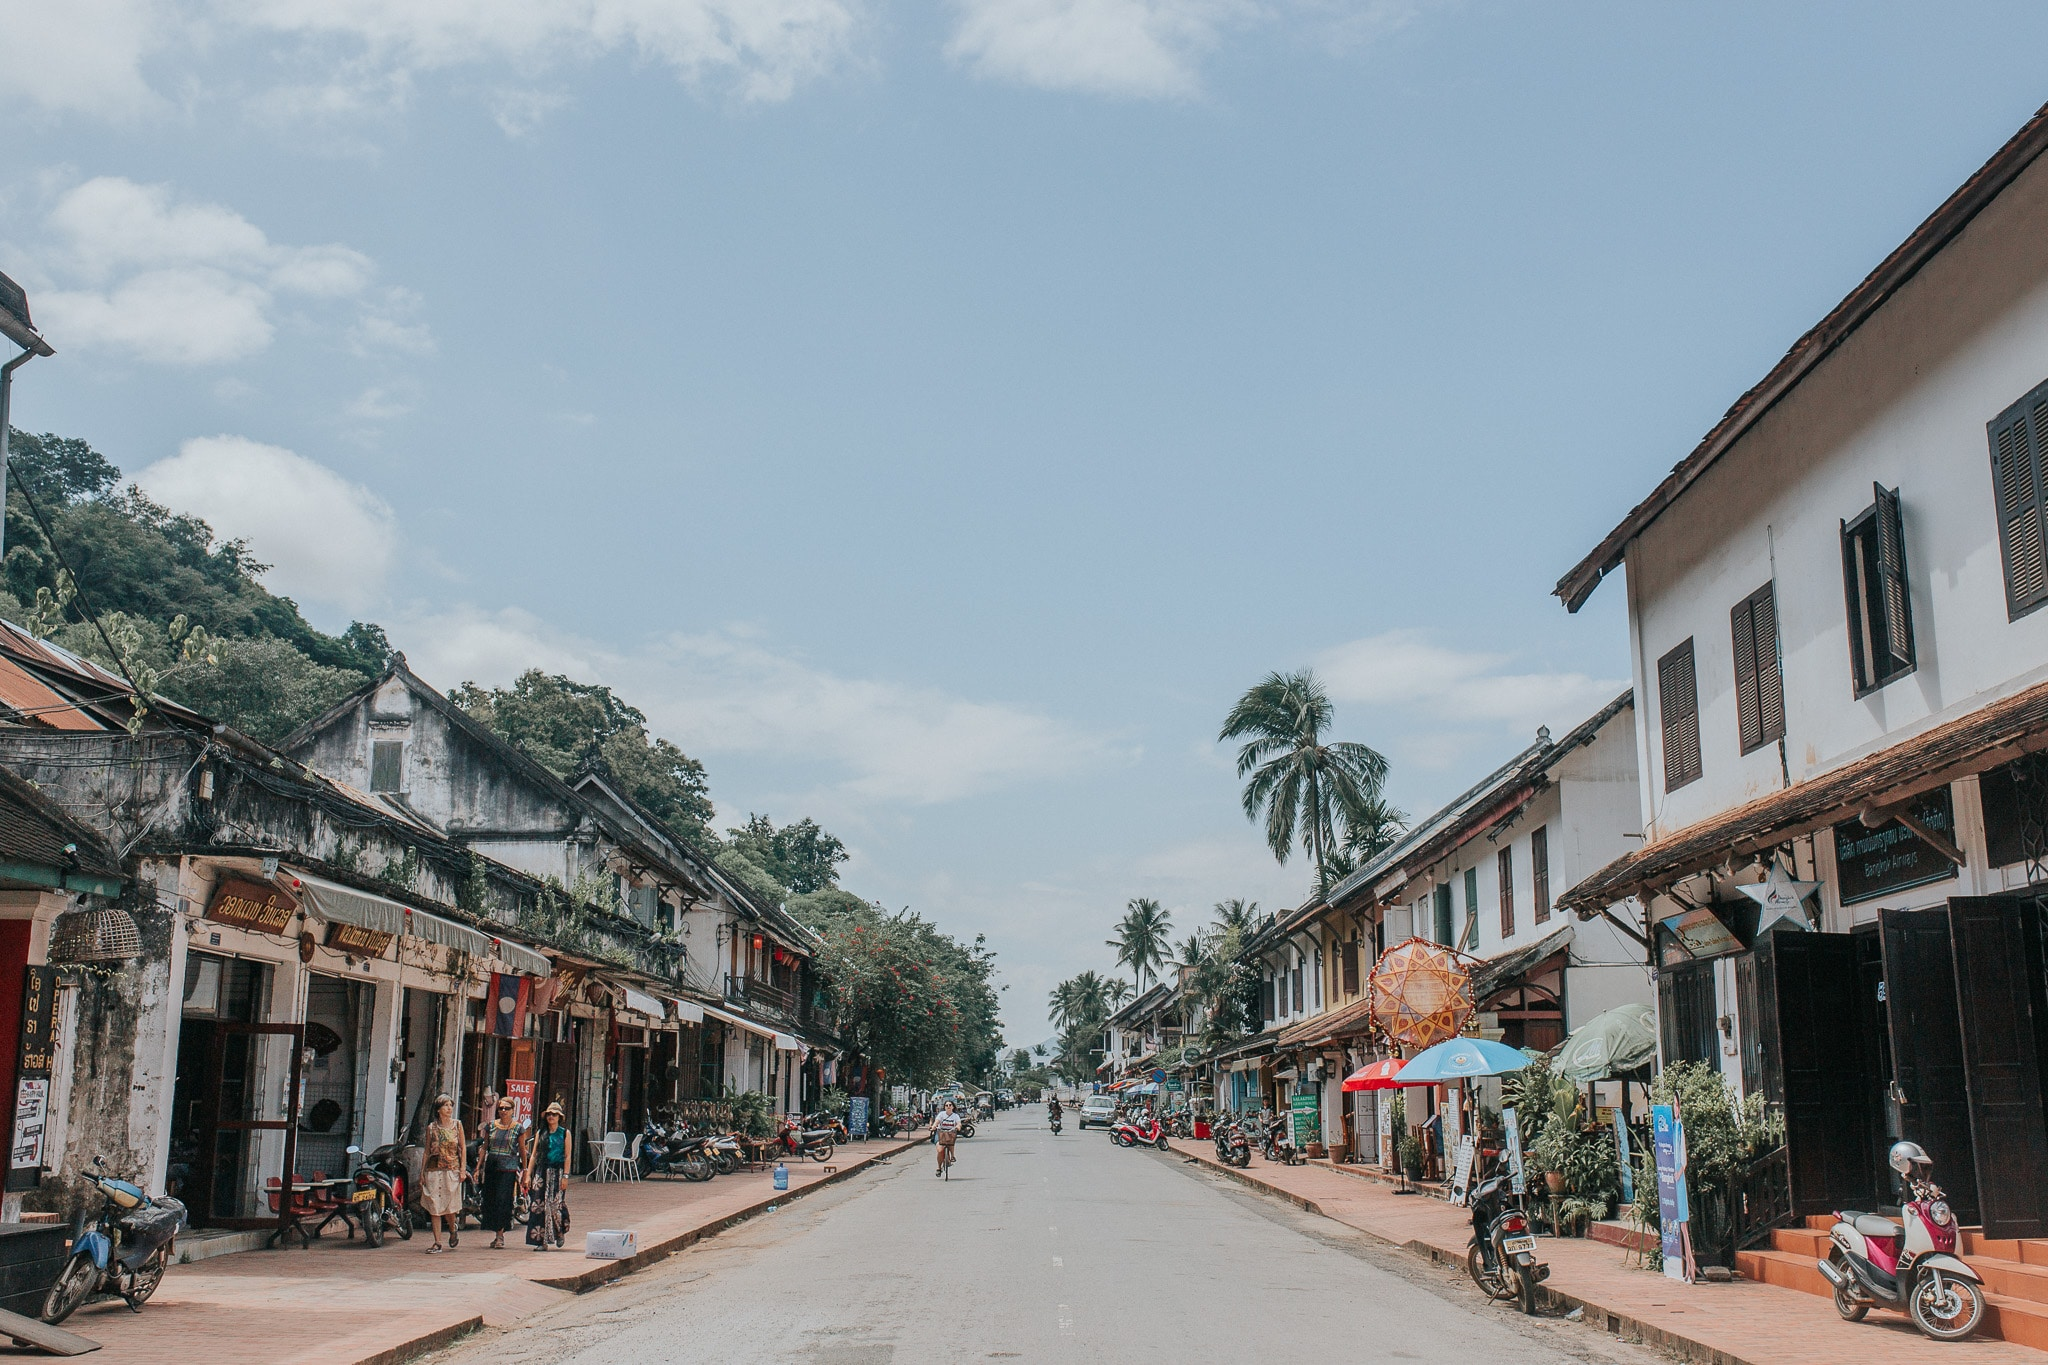 One week in Laos - Luang Prabang - High Street